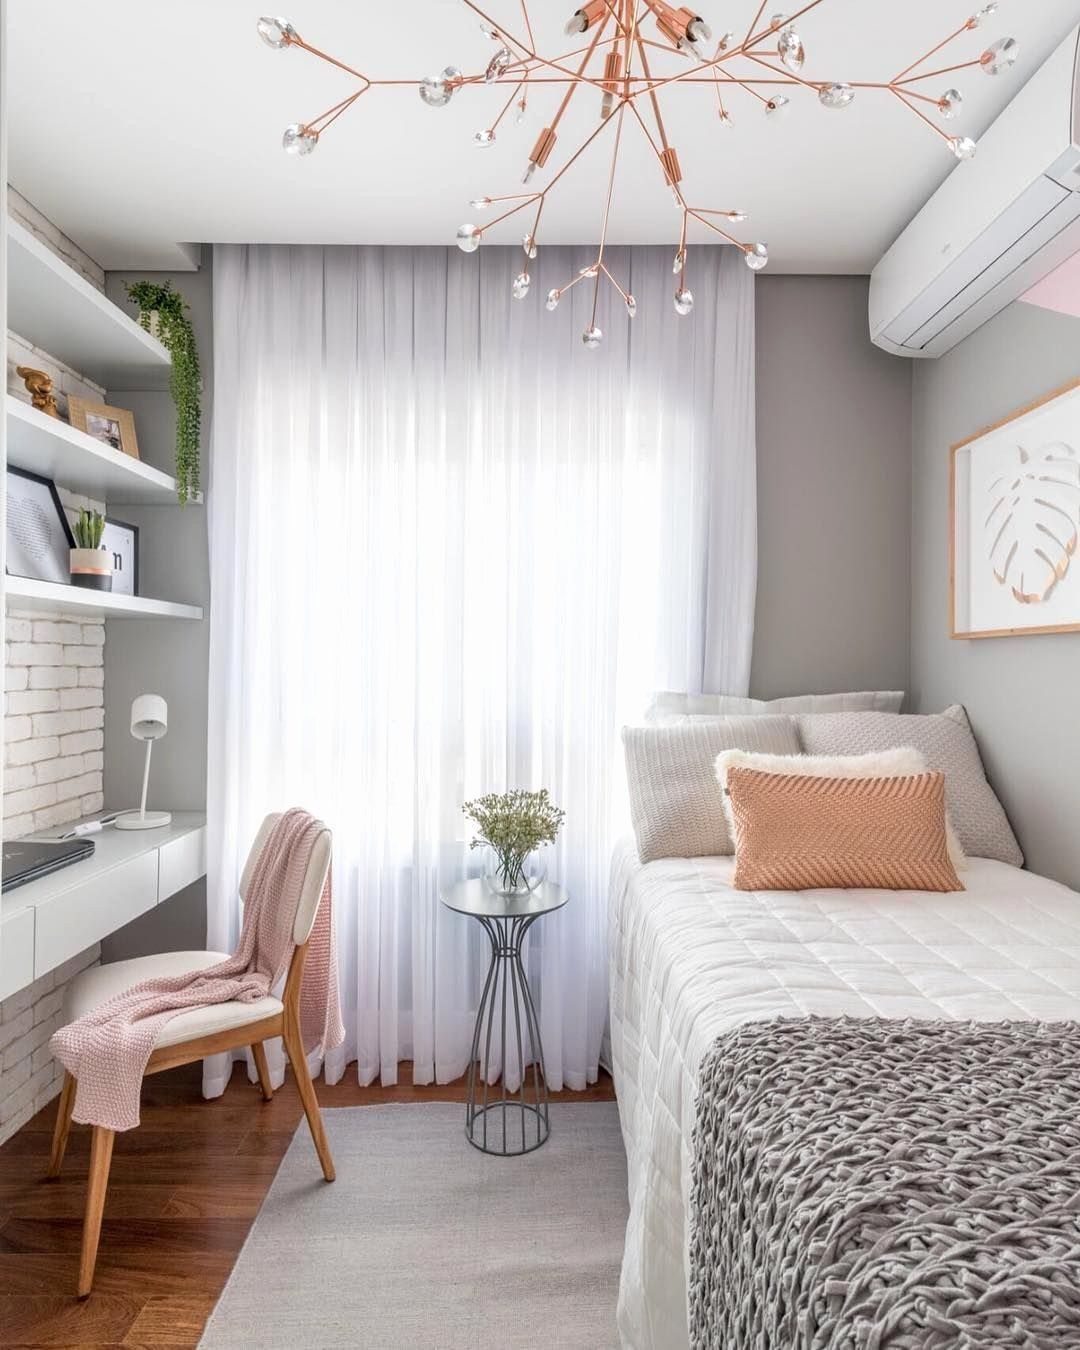 Bedroom Ideas For Small Rooms New 40 Space Saving Ideas For Small Bedrooms In 2020 Small Bedroom Decor Small Apartment Bedrooms Woman Bedroom